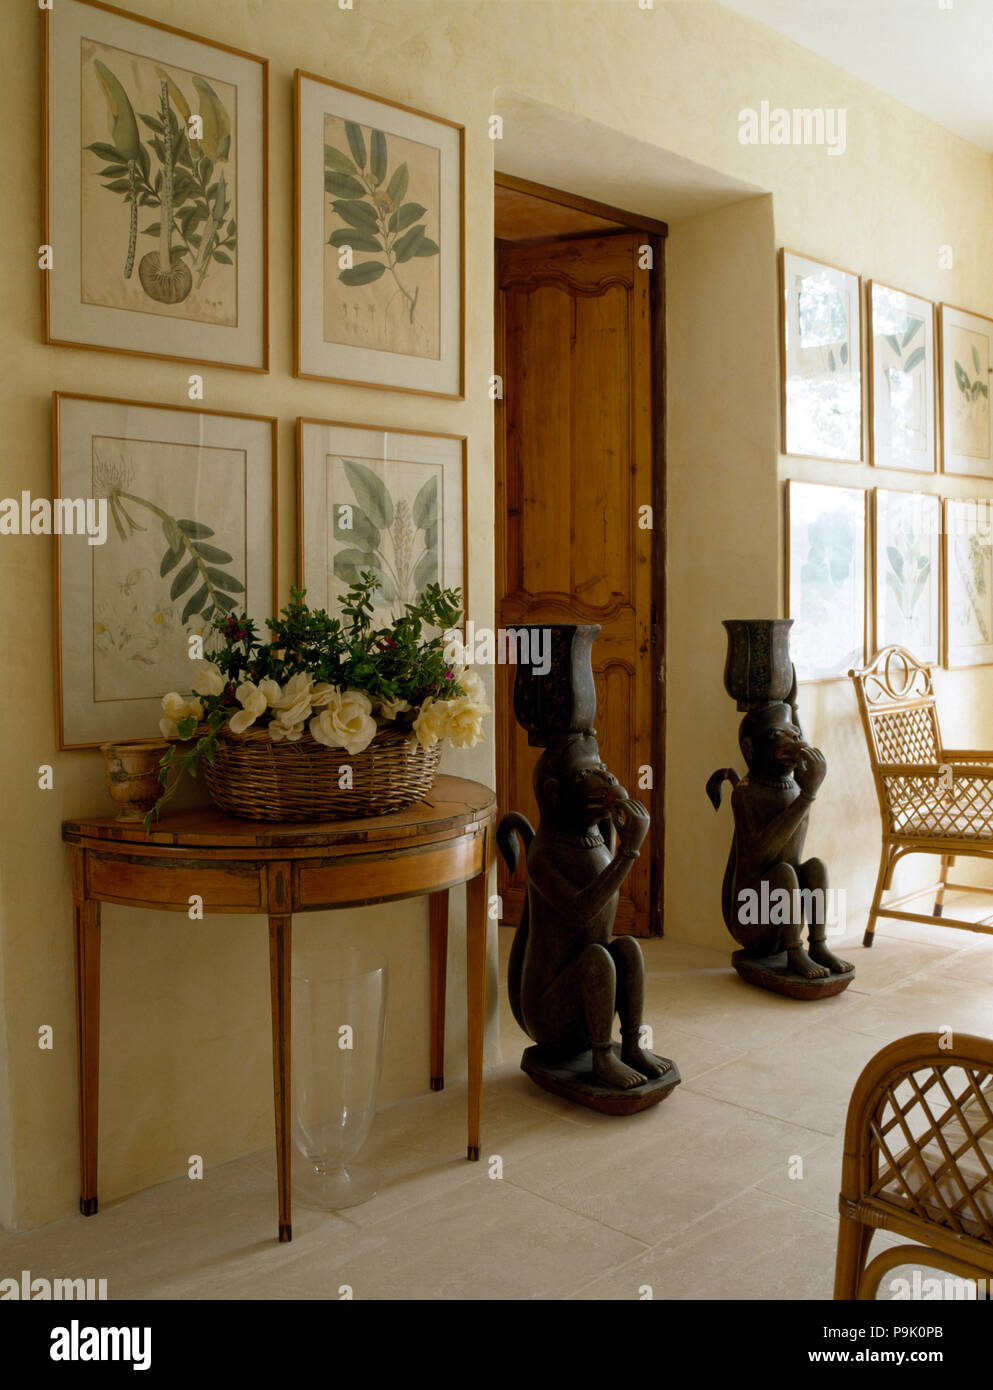 Ordinaire Framed Botanical Prints Above Console Table With A Floral Arrangement In A  Basket In A Cream Hall With Tall Oriental Statues